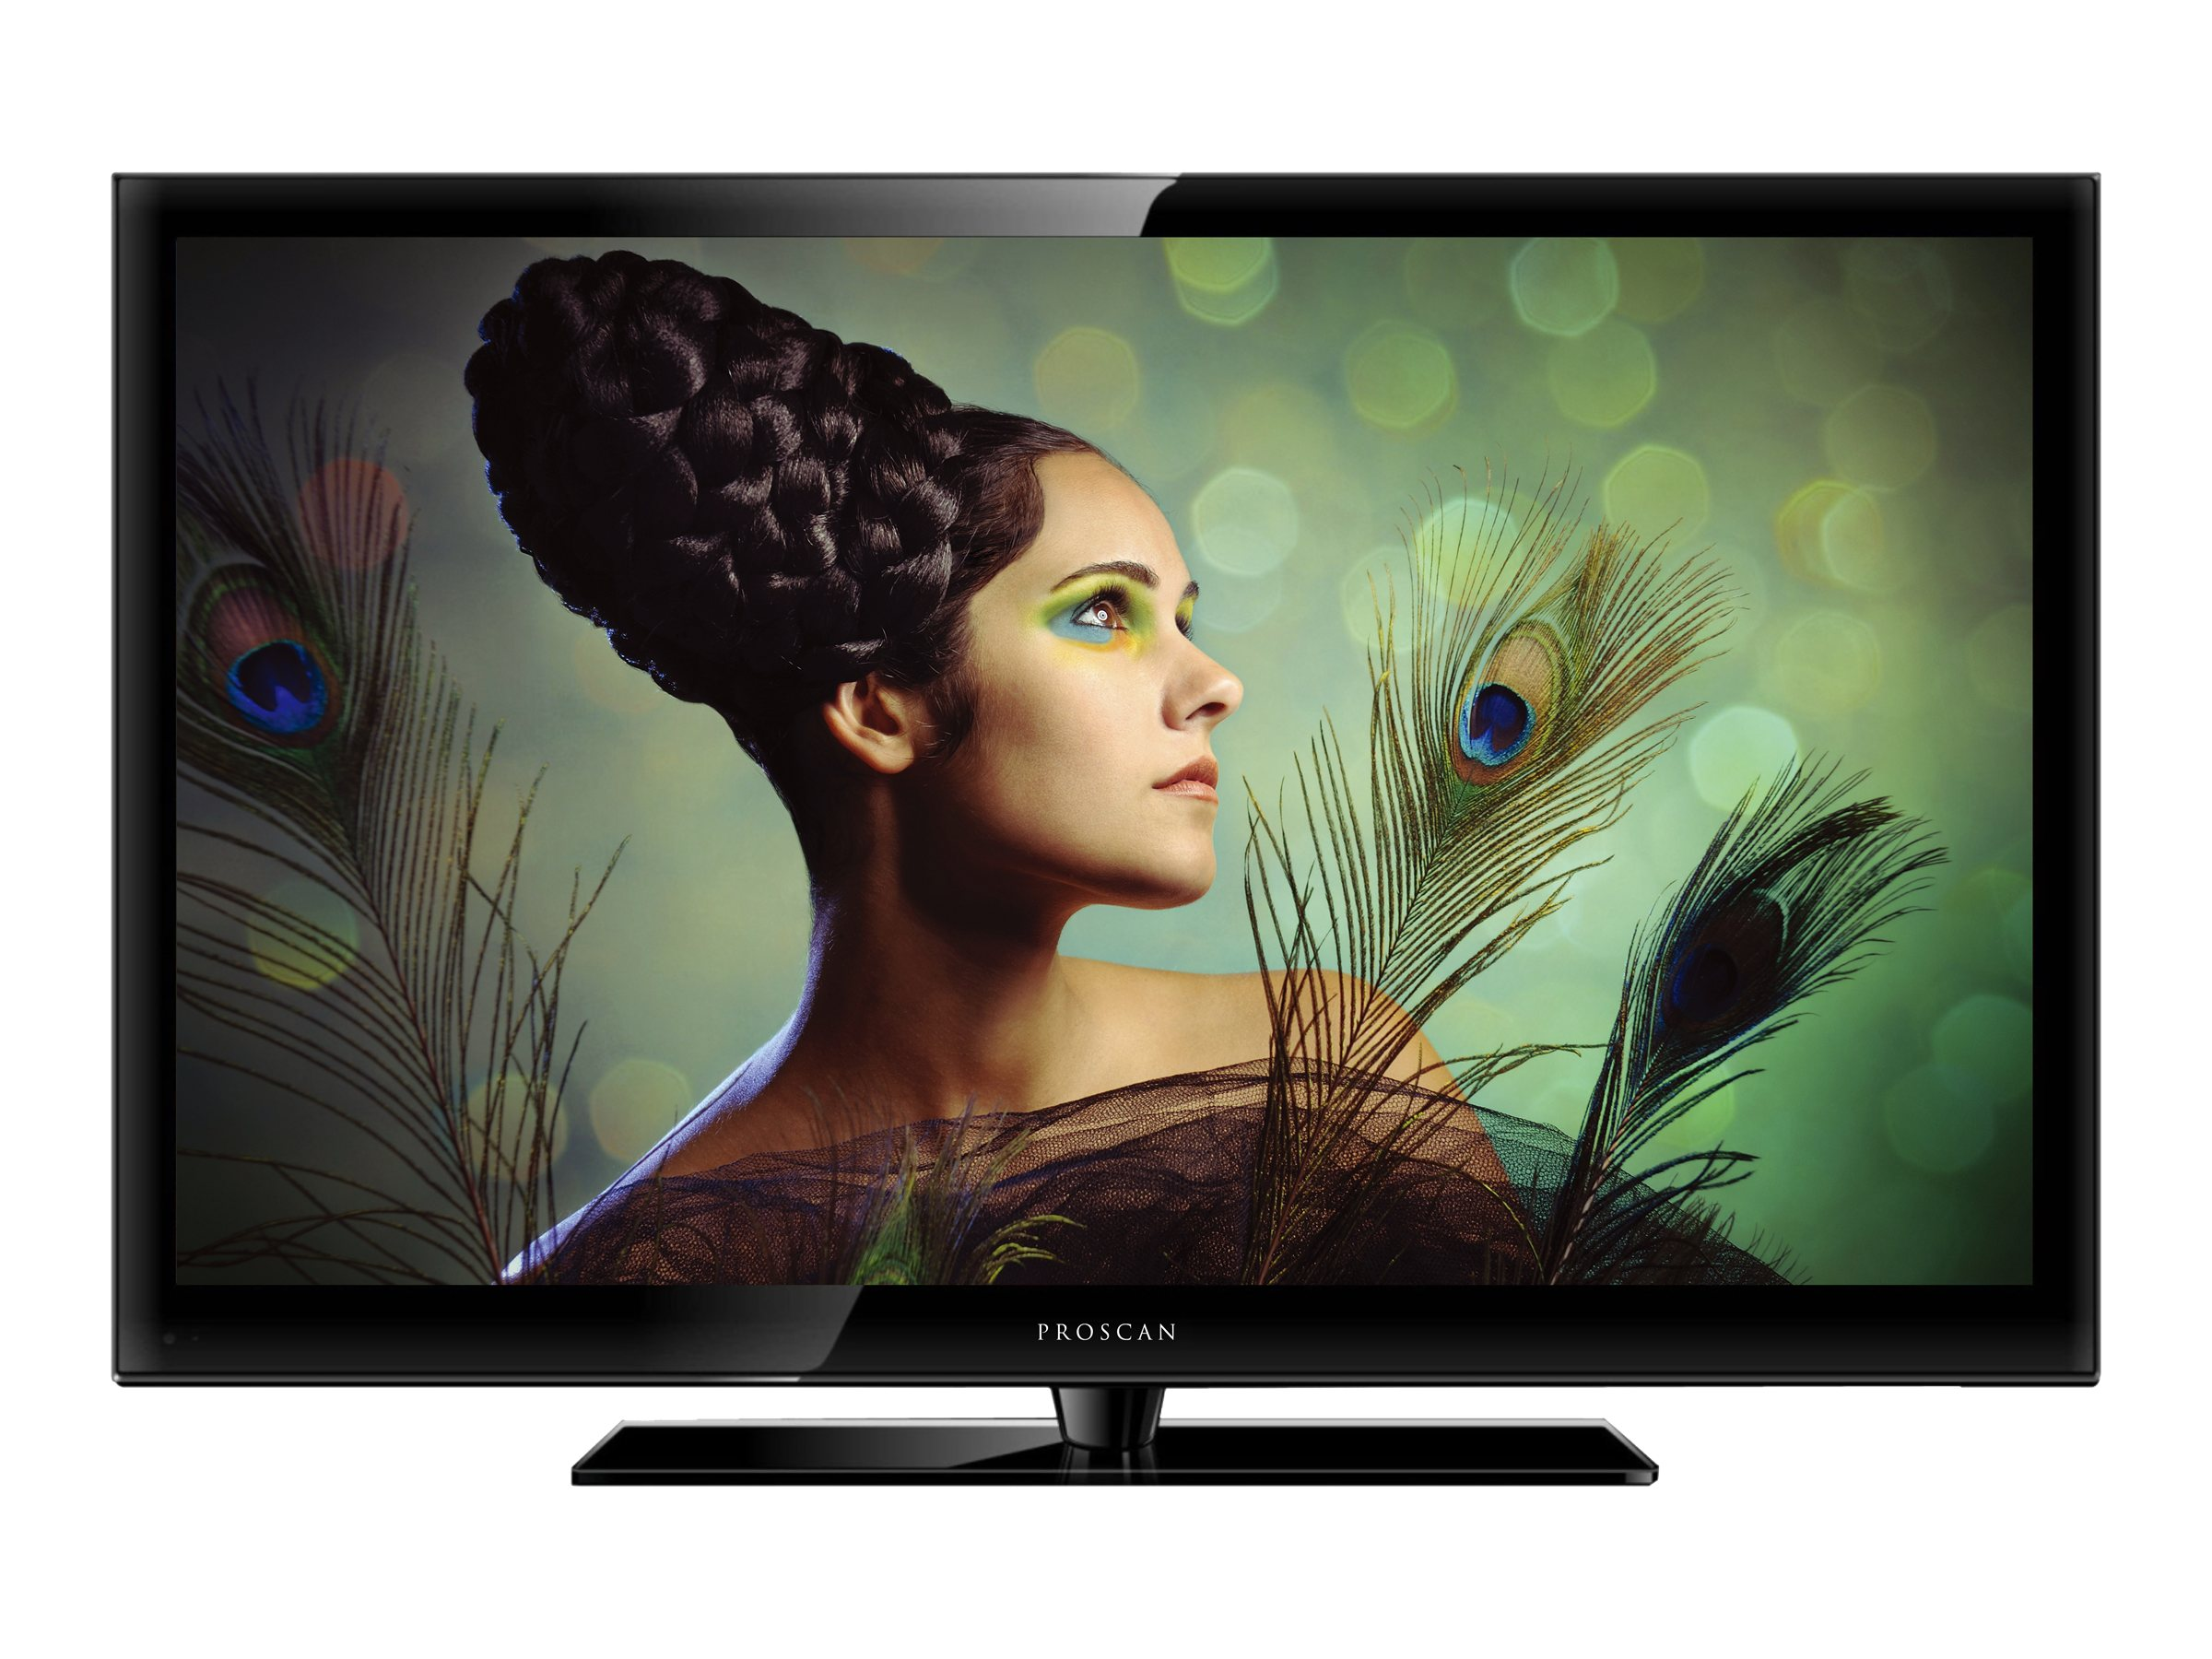 Proscan 32 PLDV321300 LED-LCD TV, Black with DVD Player, PLDV321300, 16105704, Television Combos